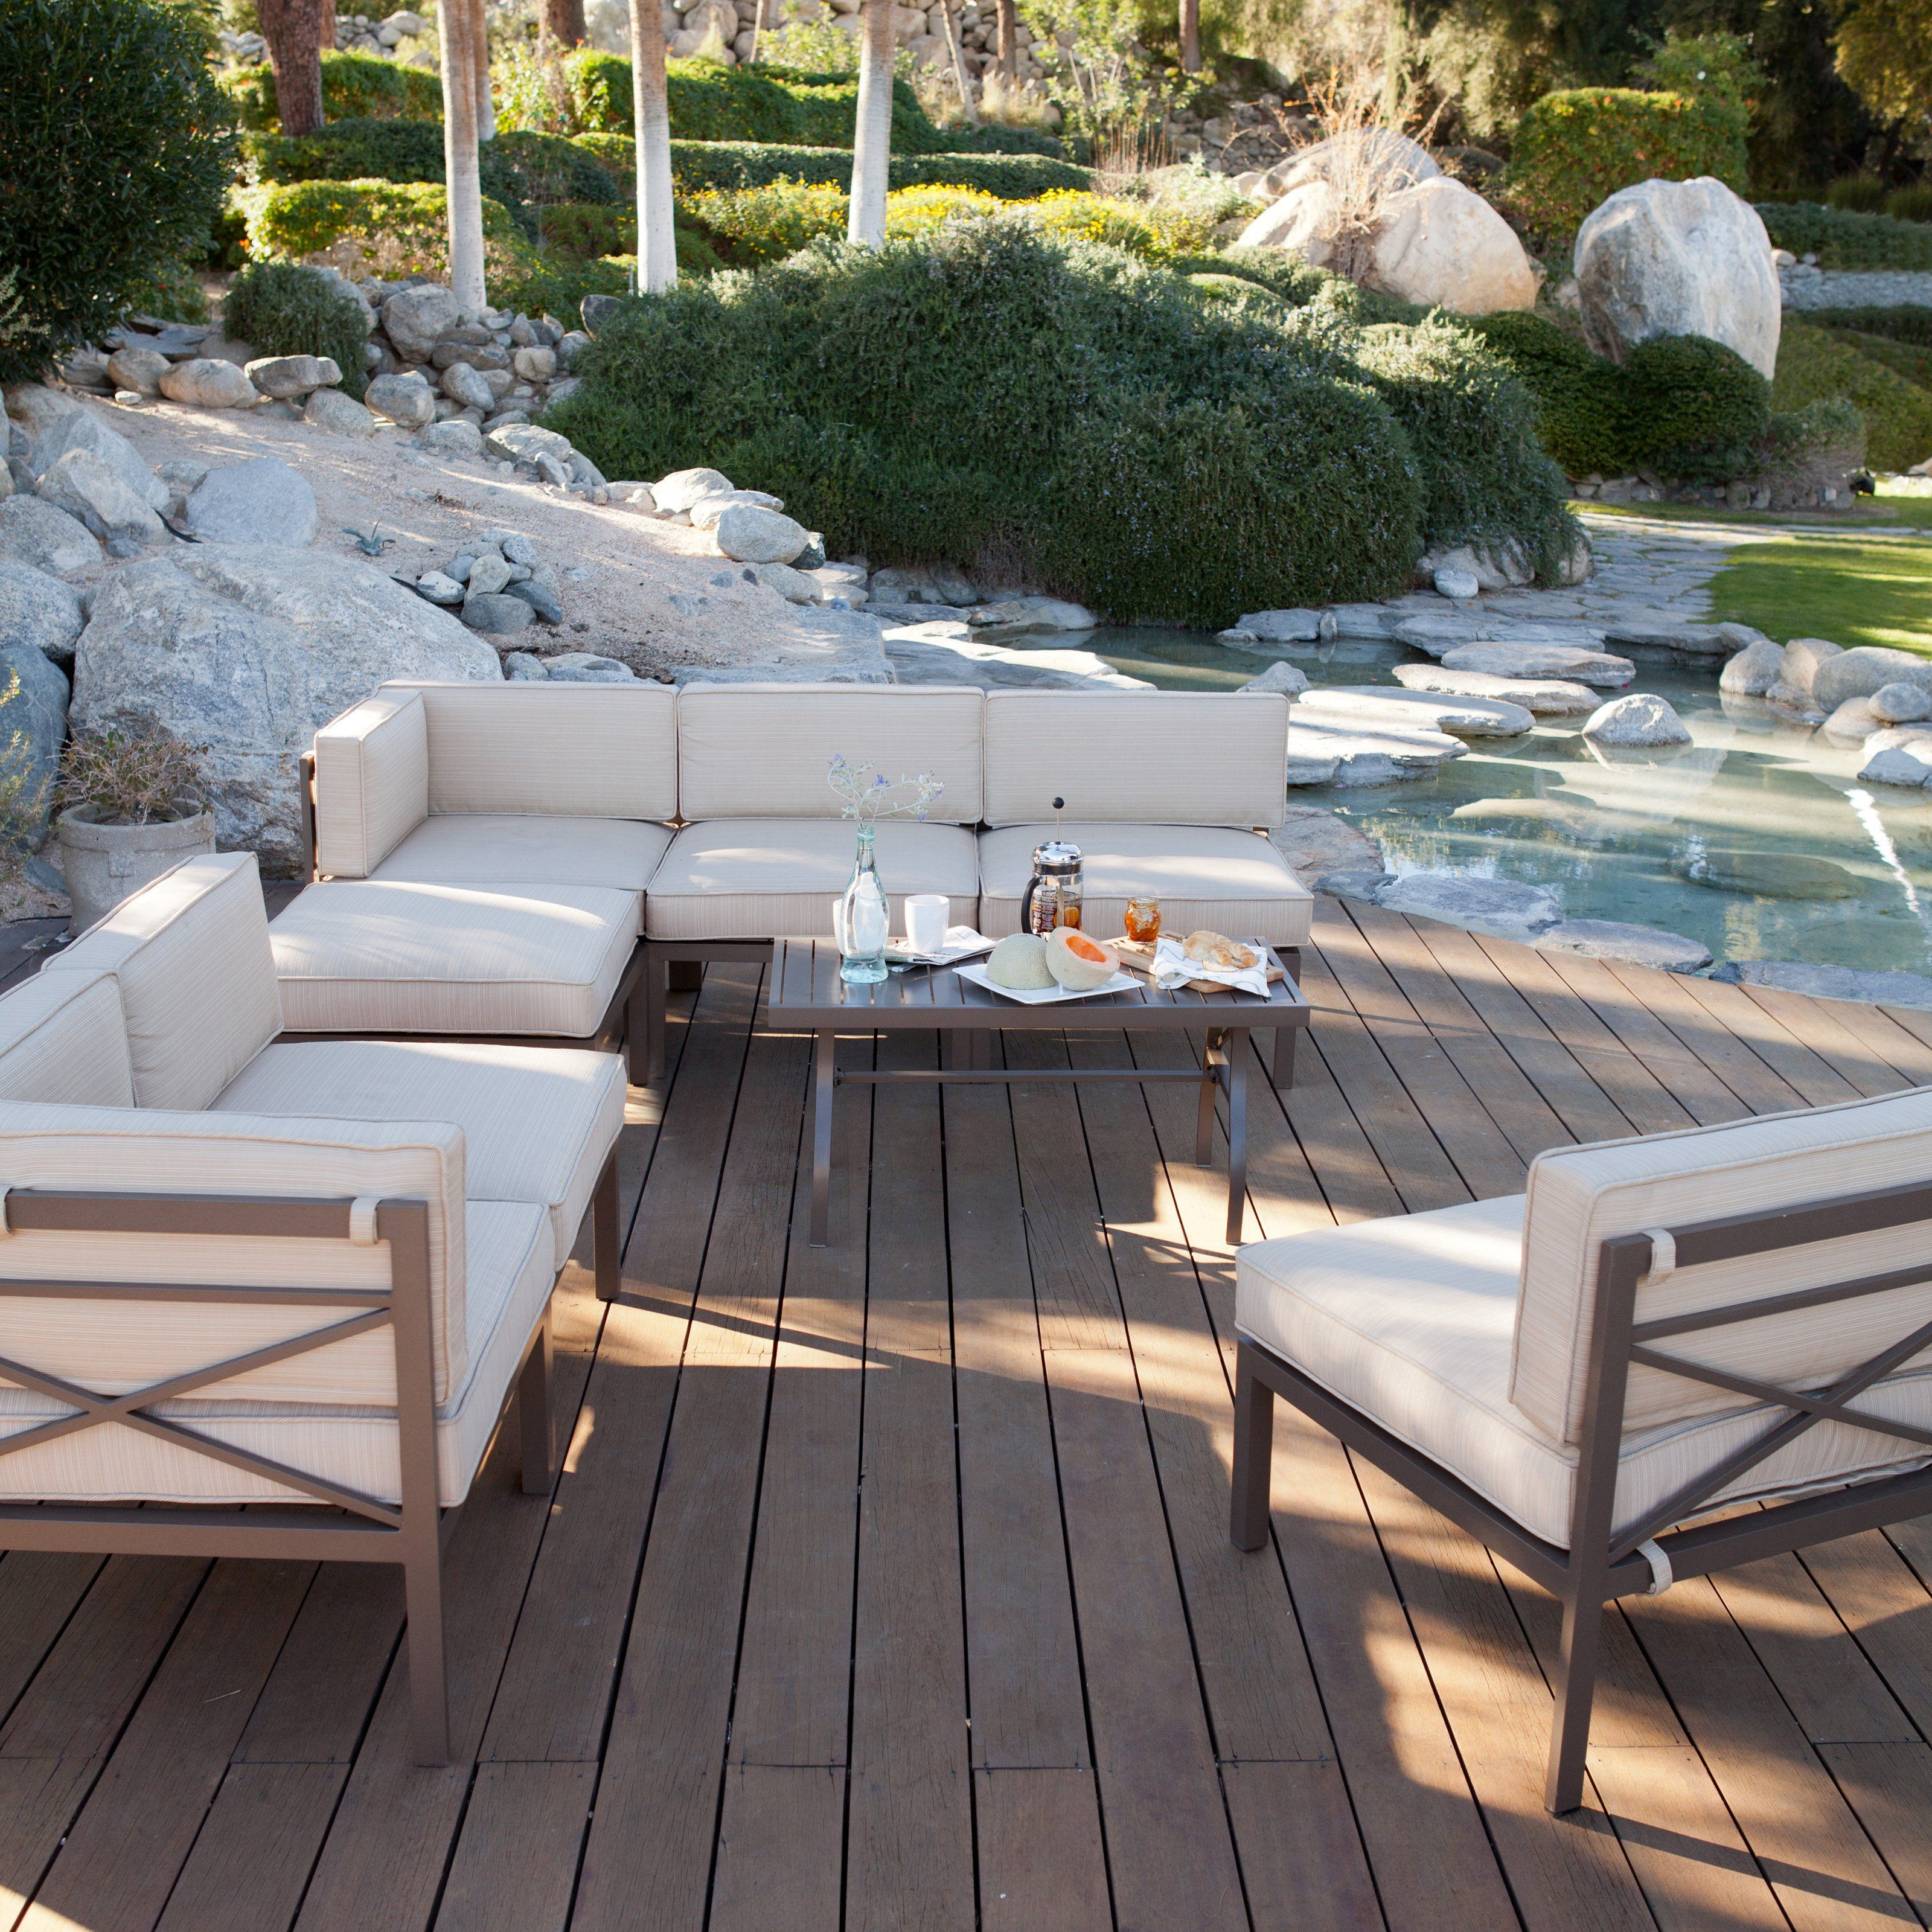 Explore Porch Furniture, Outdoor Furniture Sets, And More!